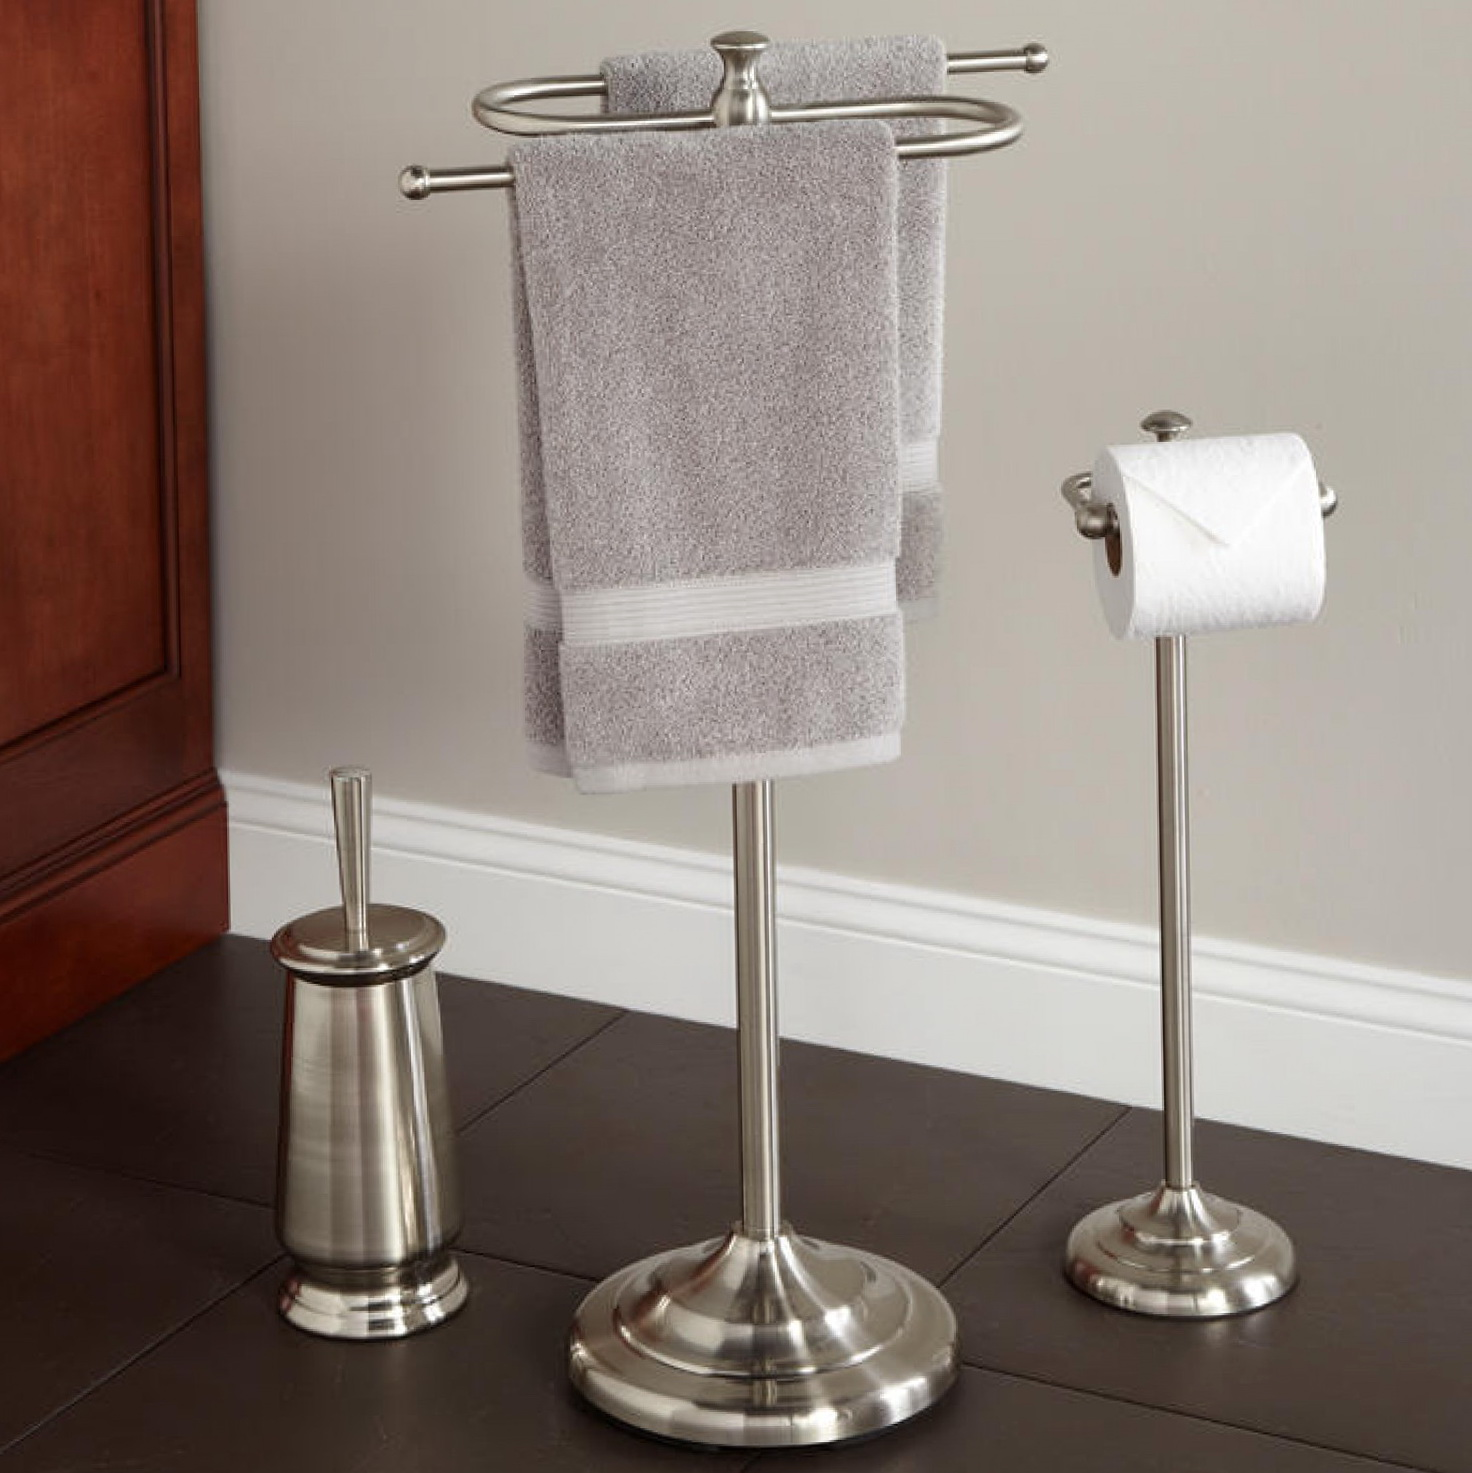 Bathroom Towel Bars And Toilet Paper Holders